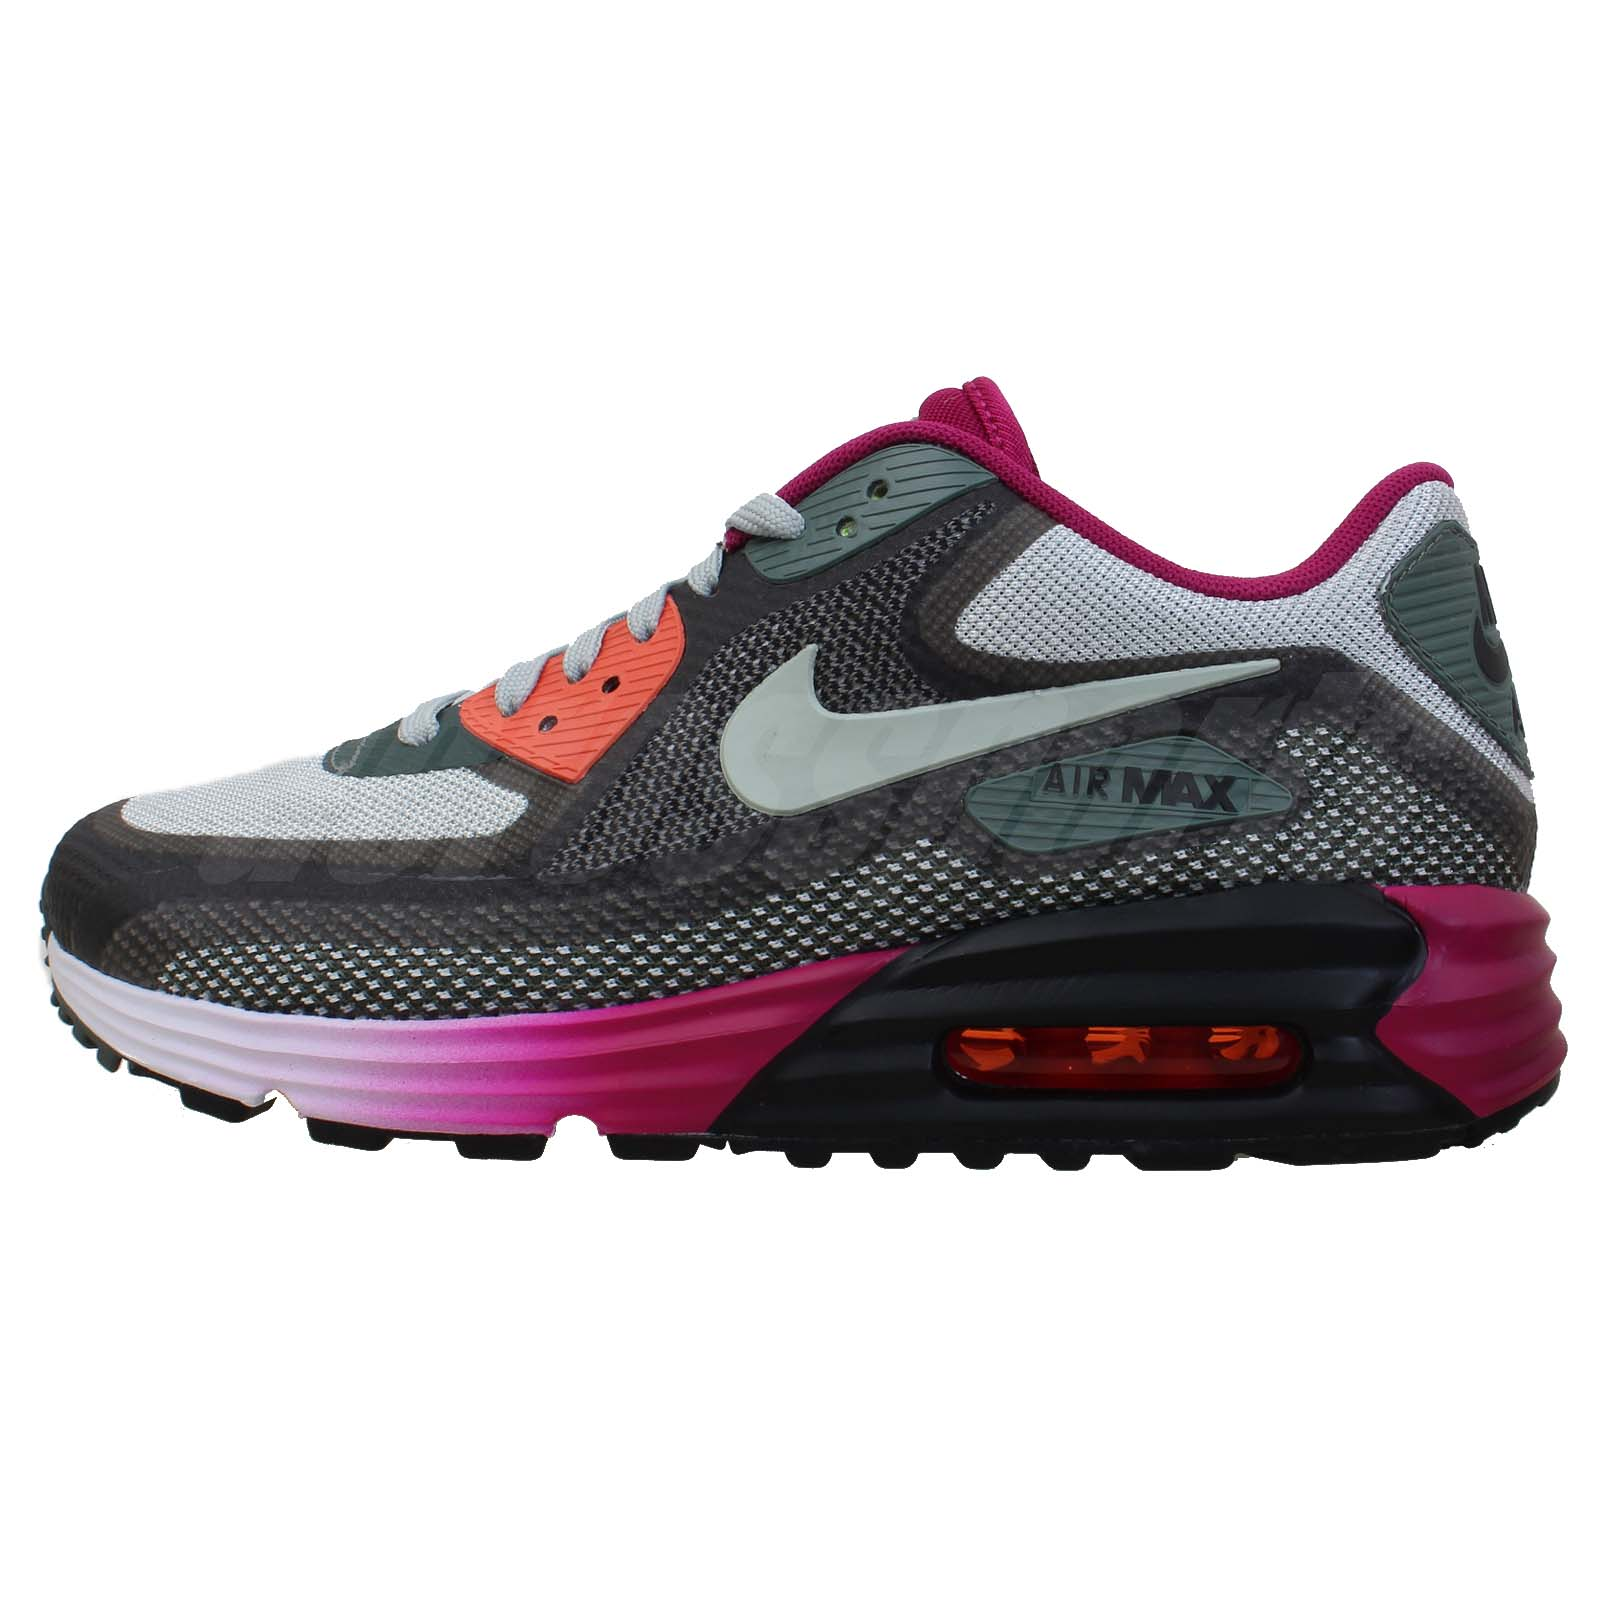 Nike air max lunar90 womens